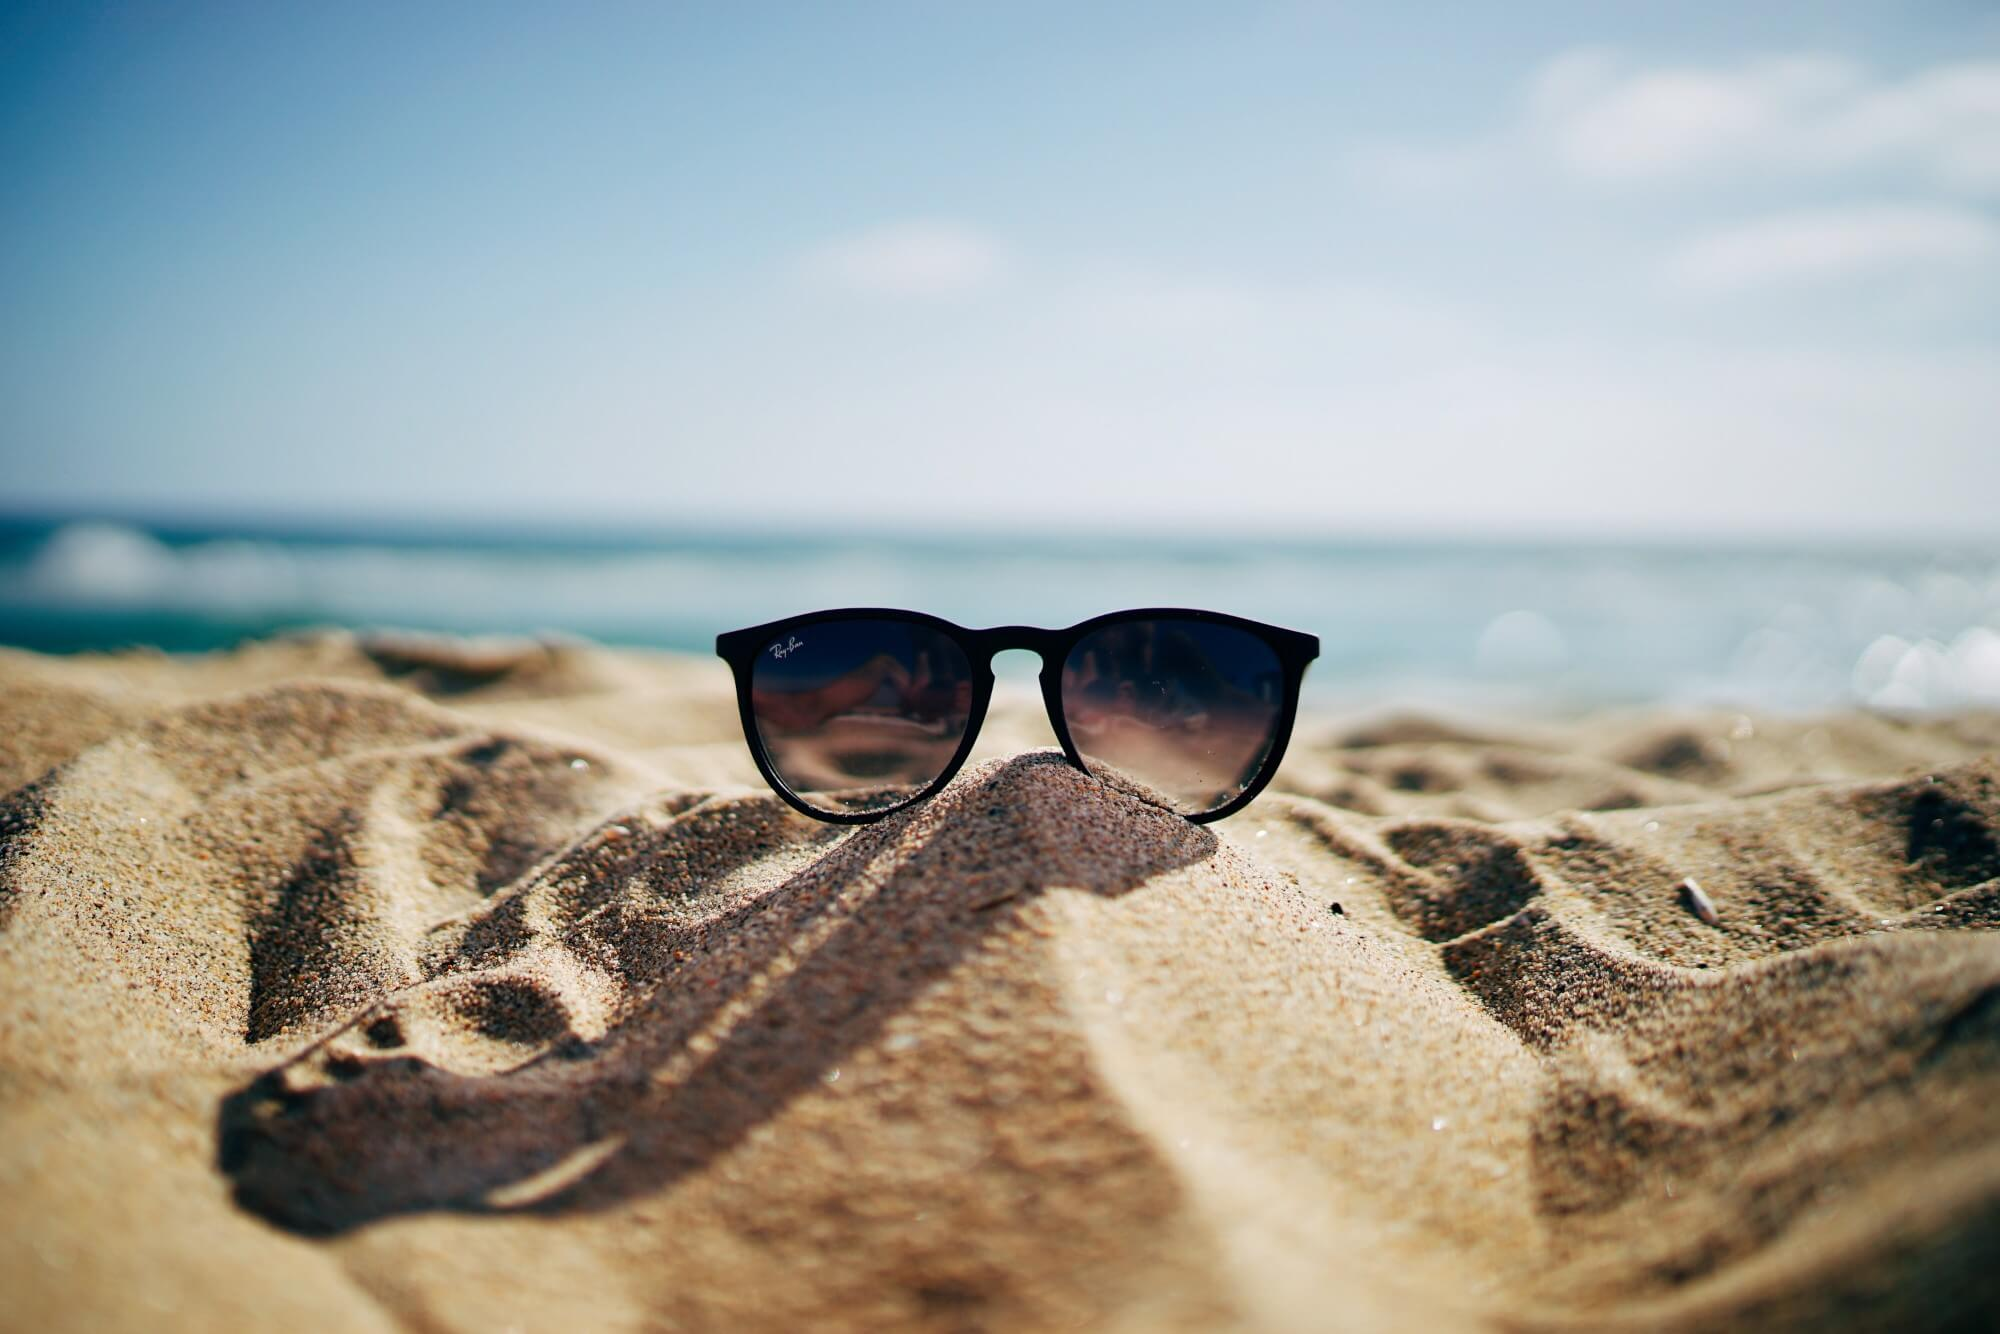 Sunglasses sitting on top of sand pile on the beach